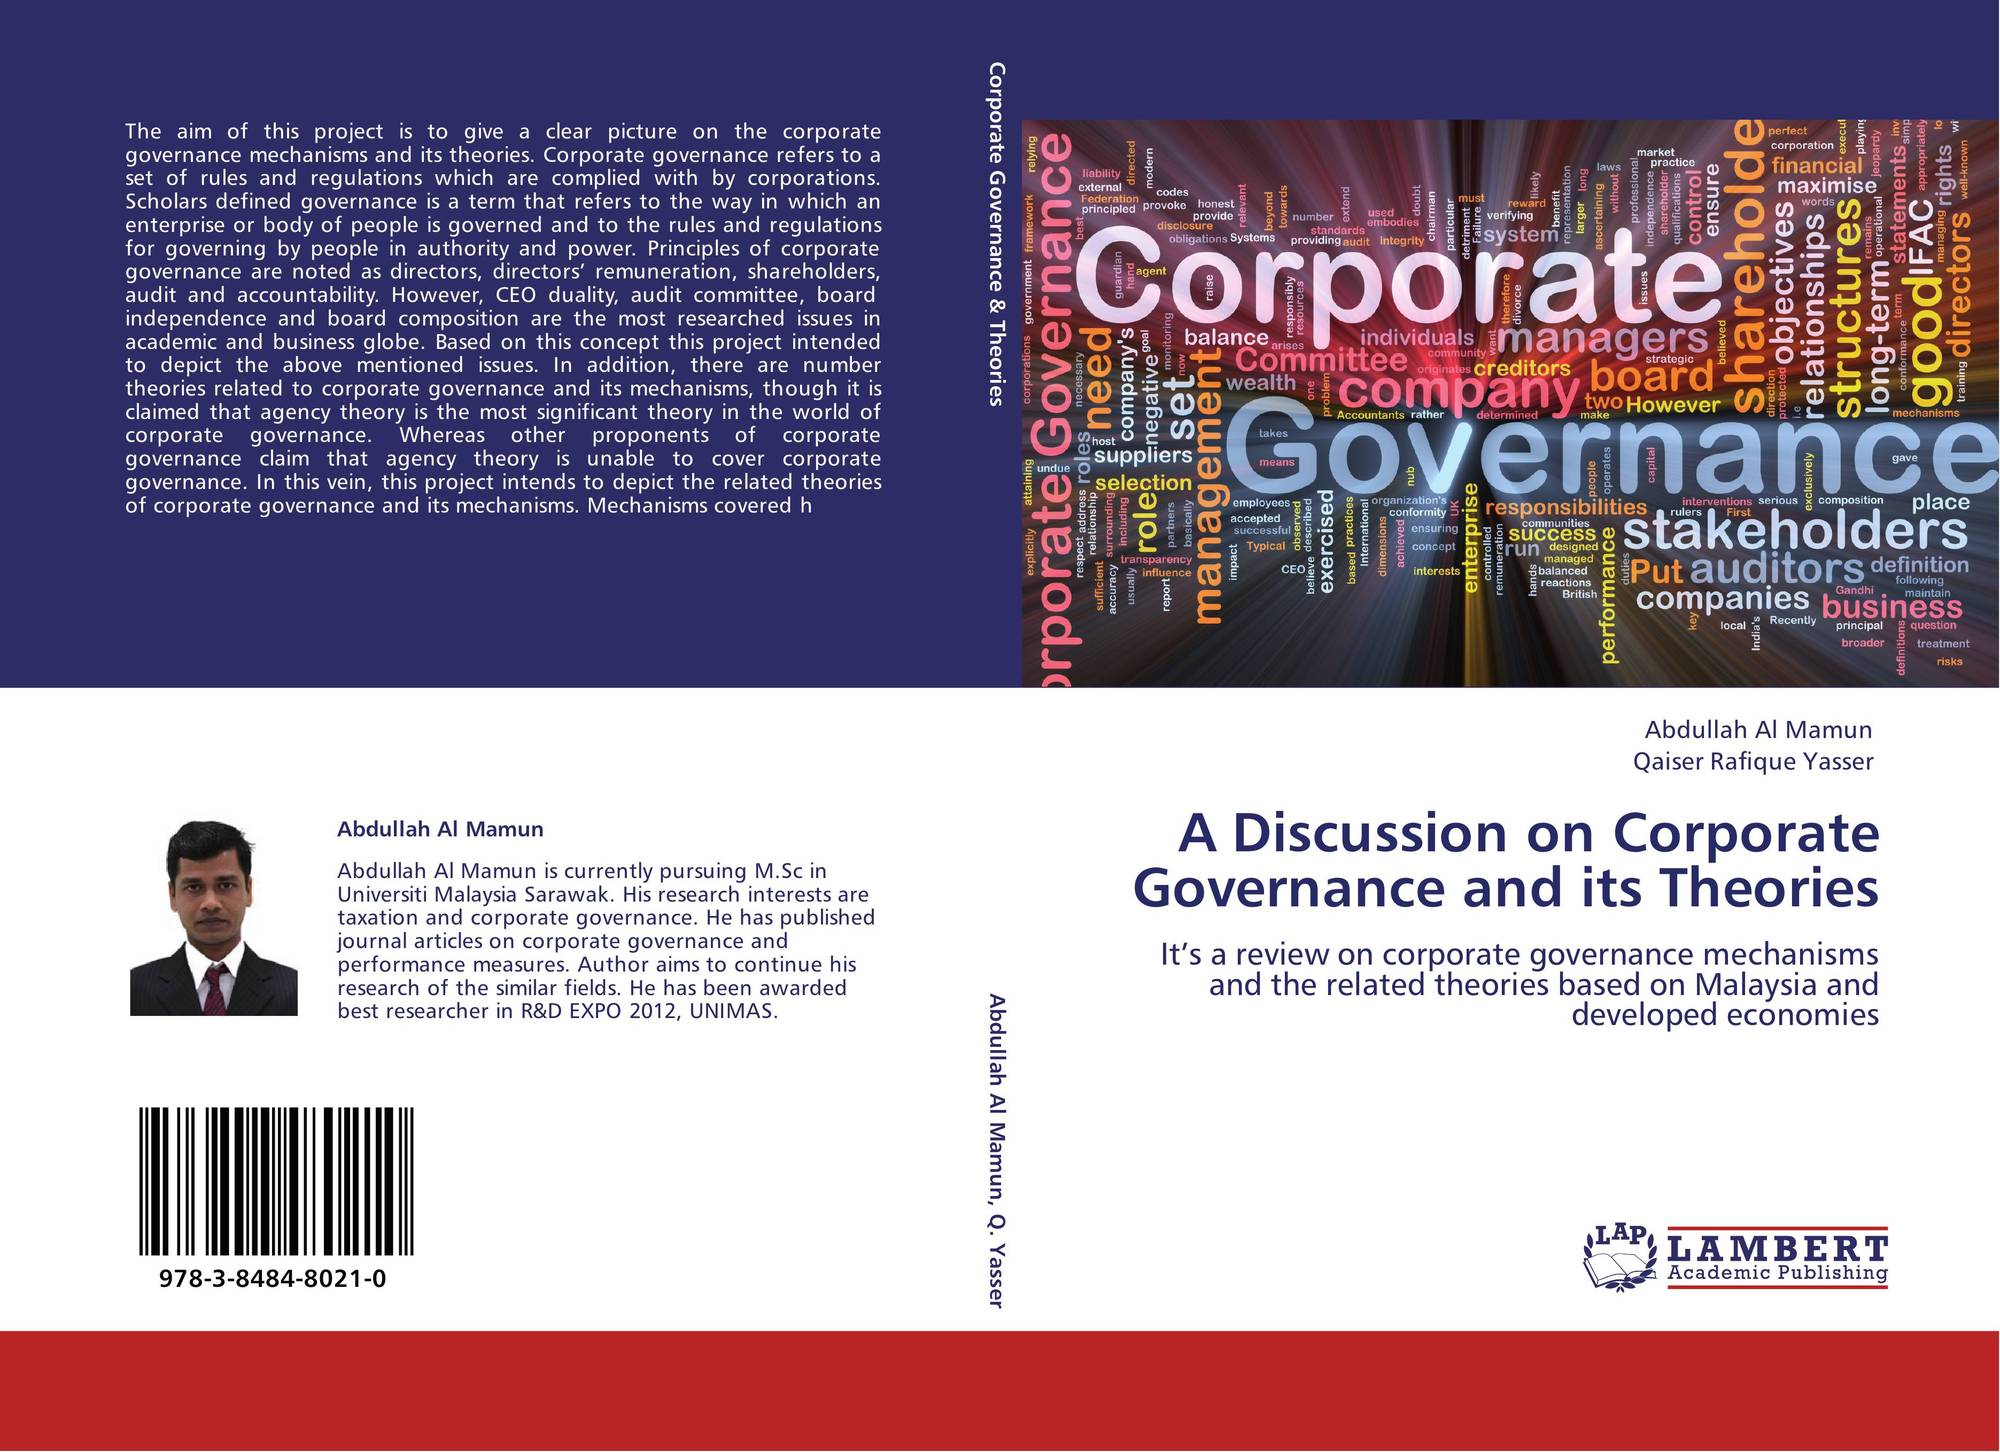 corporate governance and theories A detailed look at the importance of corporate governance in today's business world the importance of corporate governance became dramatically clear at the beginning of the twenty-first century as a series of corporate meltdowns from managerial fraud, misconduct, and negligence caused a massive loss of shareholder wealth.